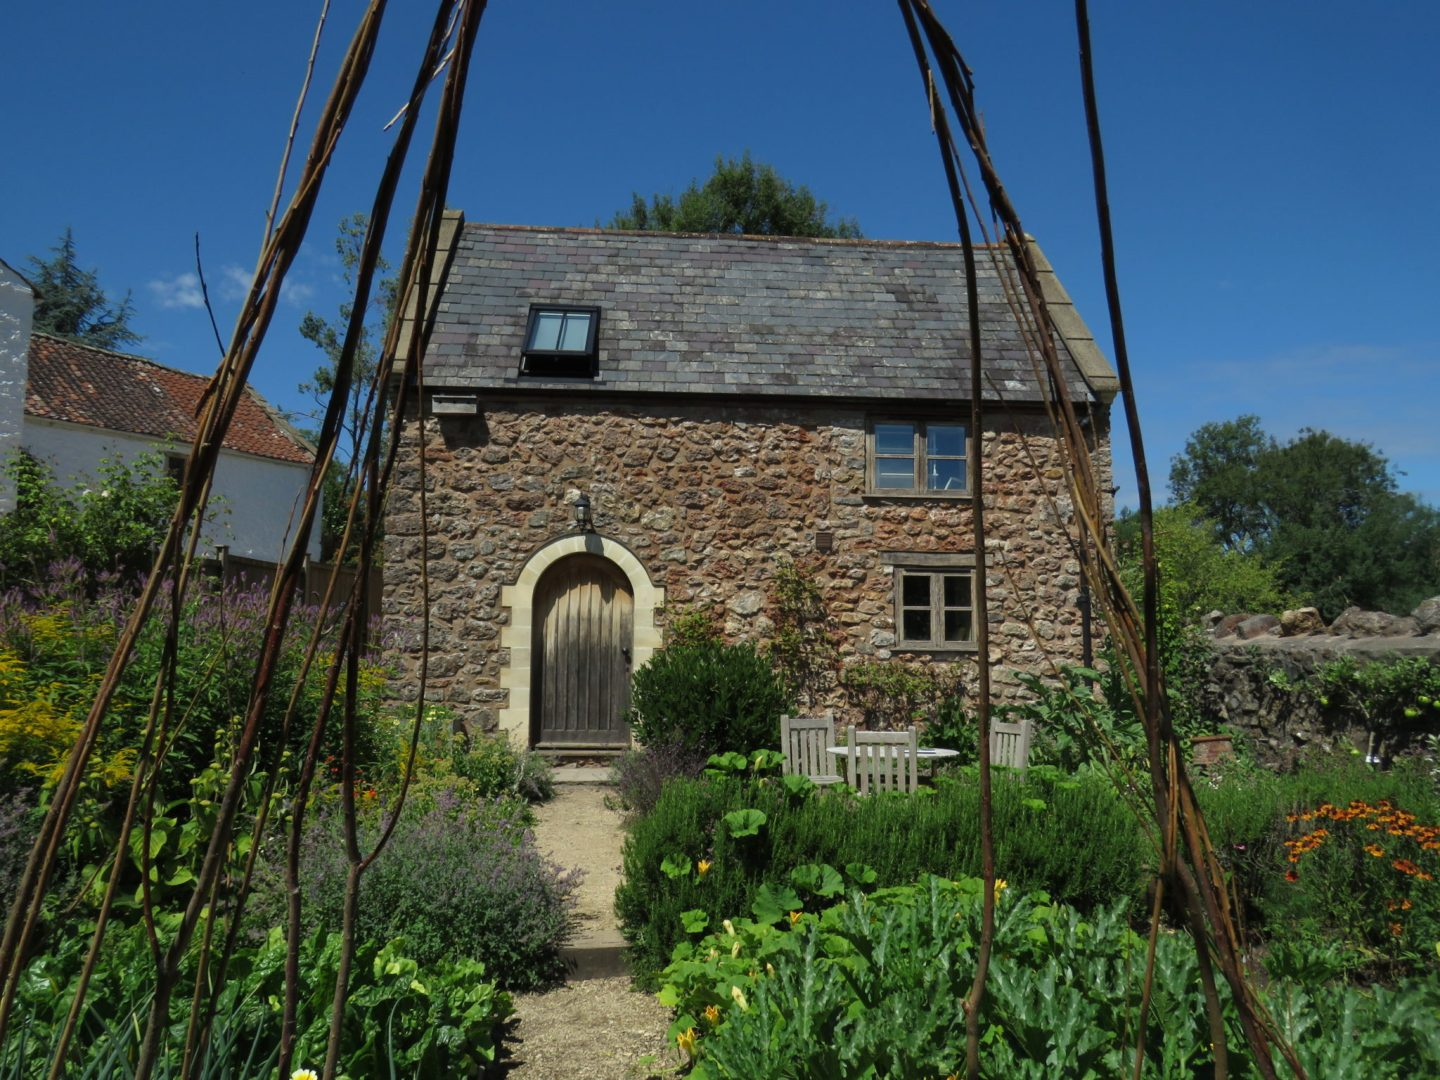 National Garden Scheme, Somerset